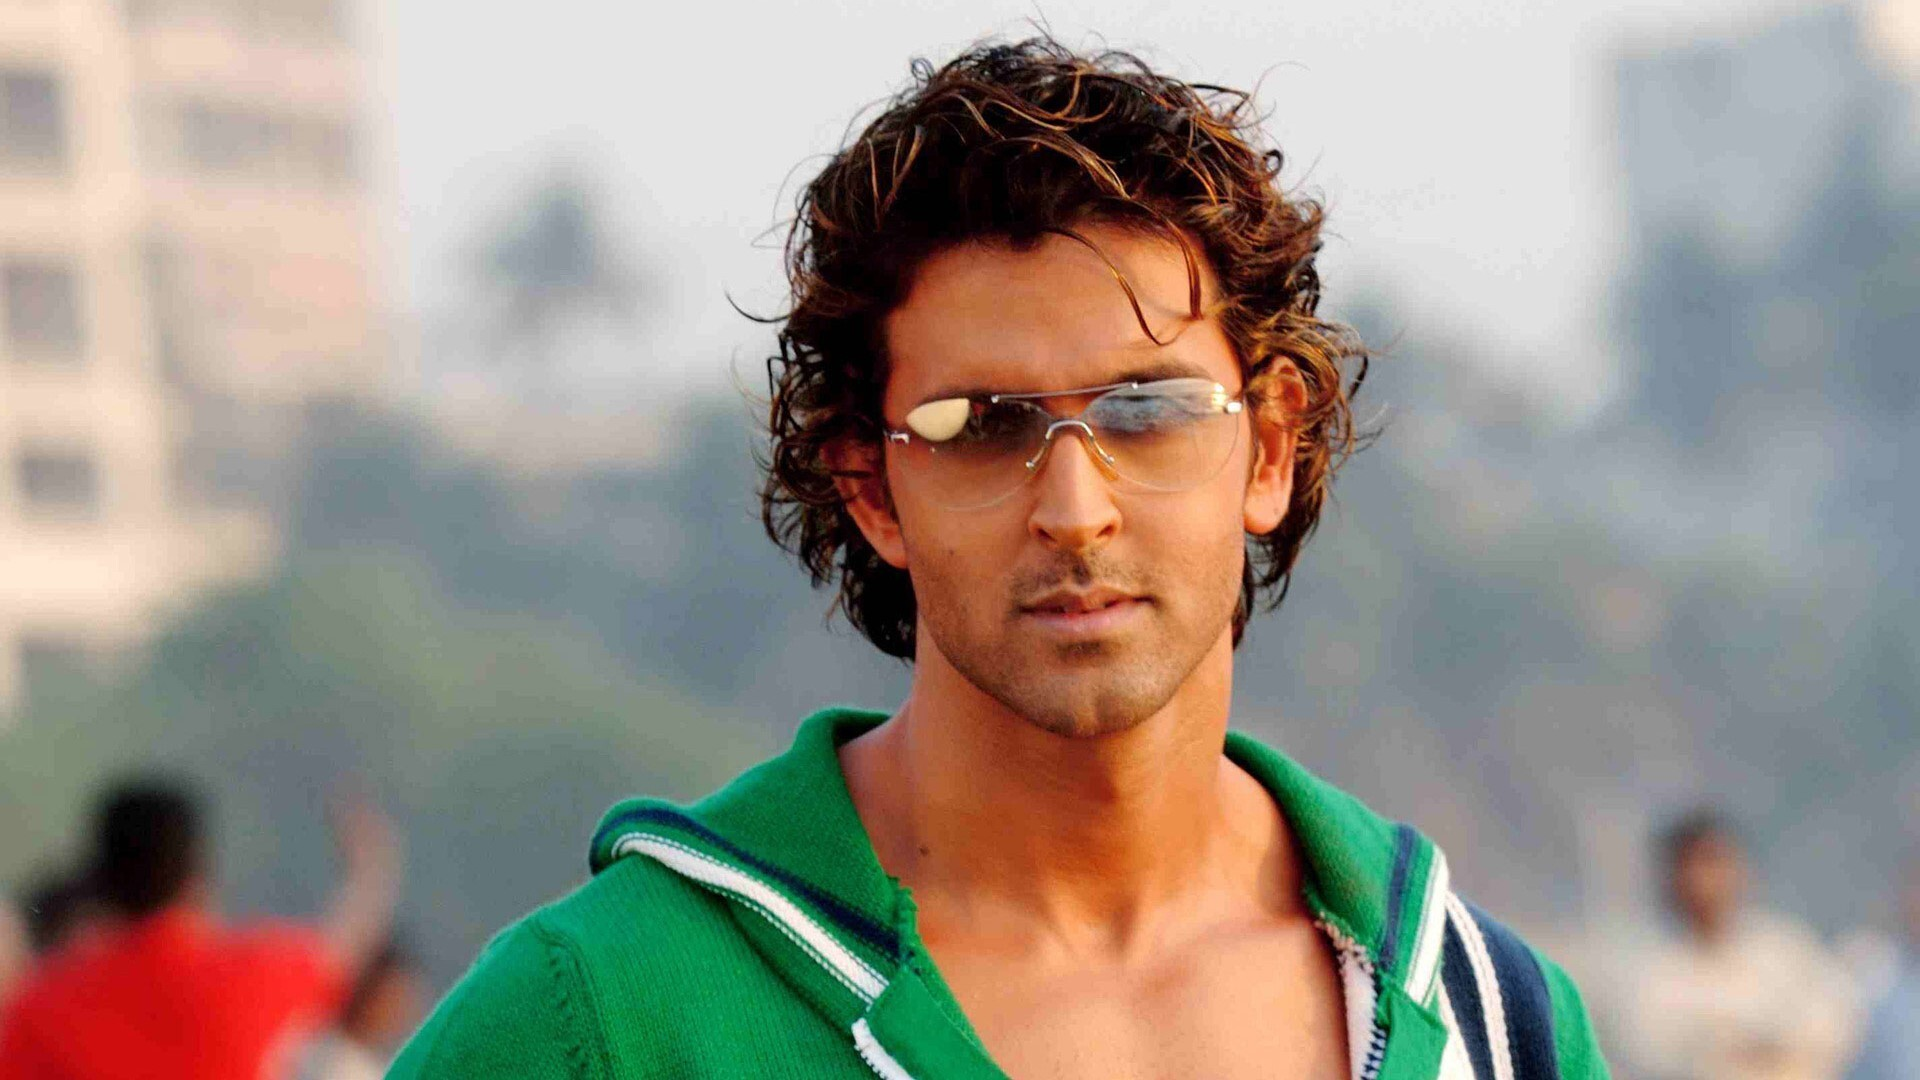 Famous Stylish and Handsome Actor Hrithik Roshan in Goggles Wallpaper